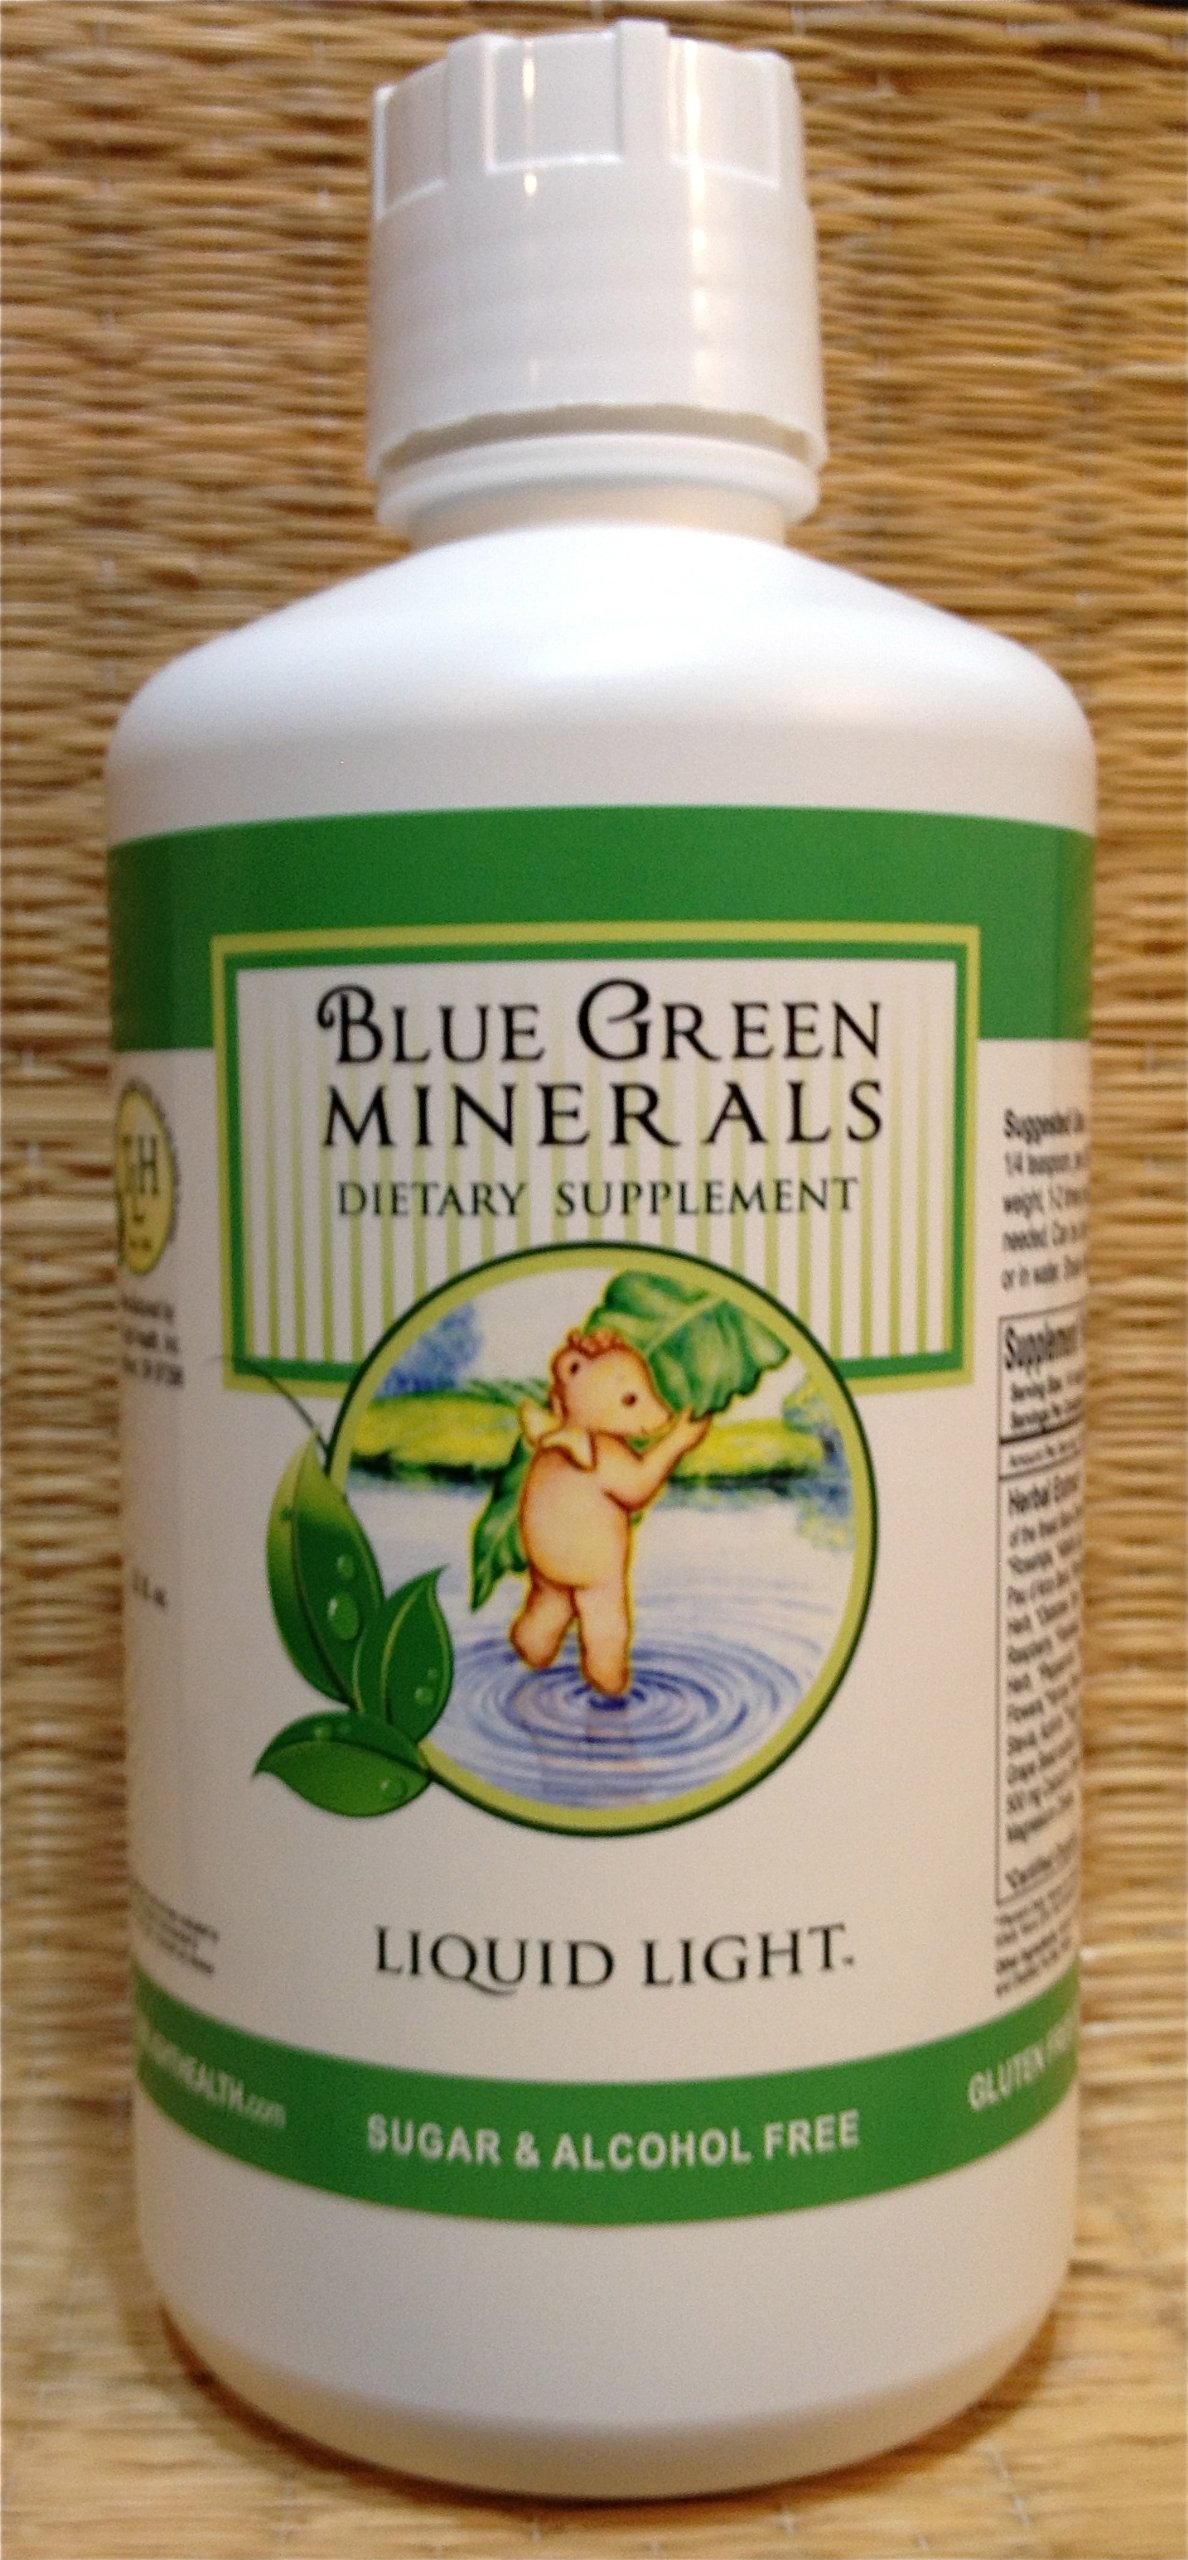 Blue Green Minerals with Calcium and Magnesium (32 oz Bottle) - Multi Mineral Supplement. BVO Free, Caffeine Free.